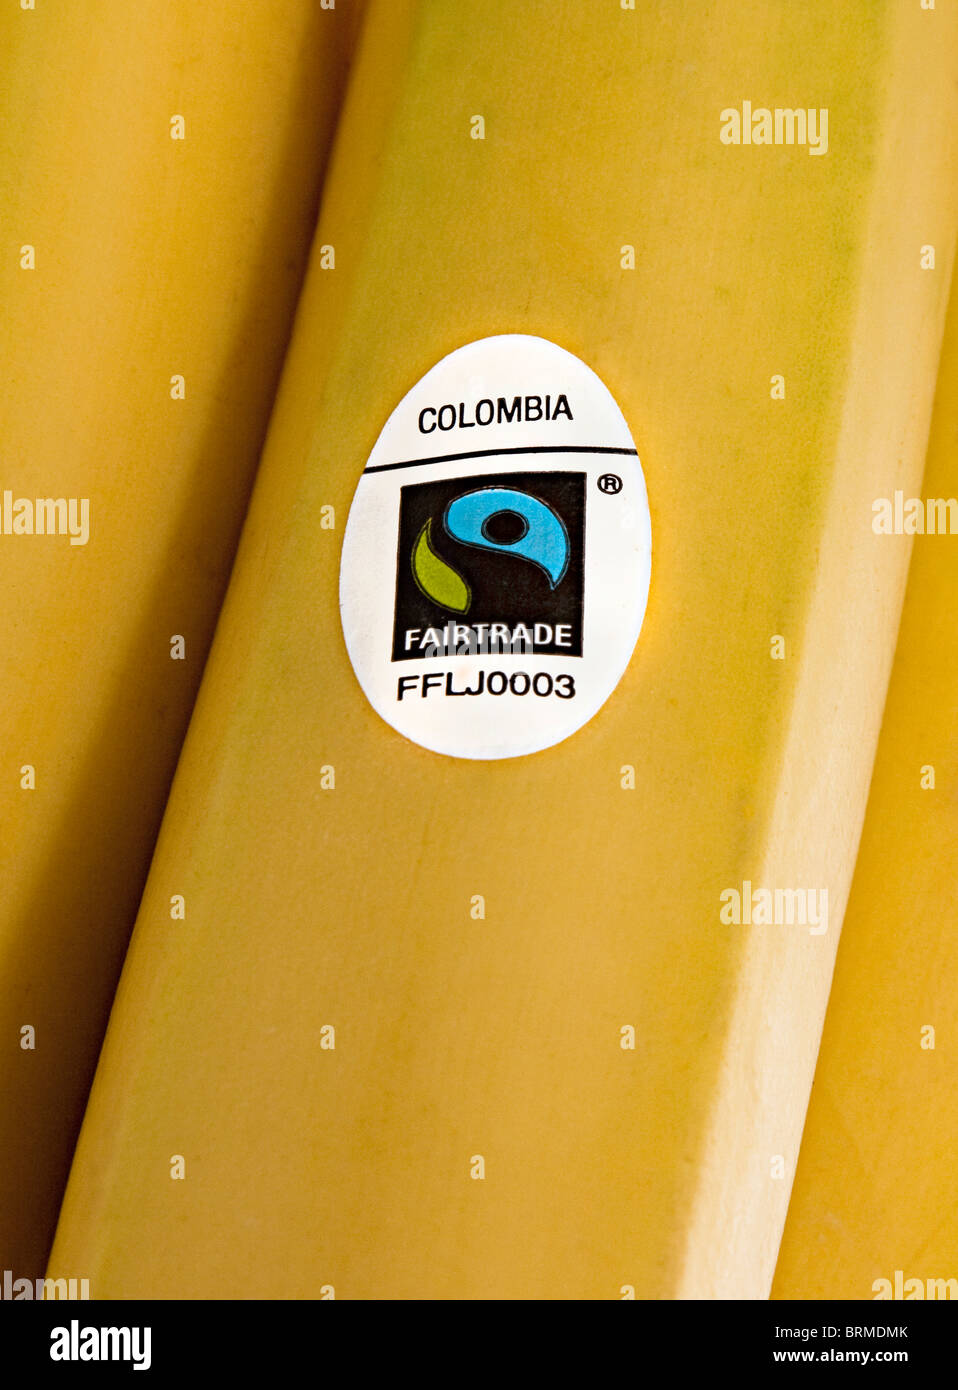 Banana with Fairtrade sticker and country of origin Colombia on sale in a UK supermarket - Stock Image